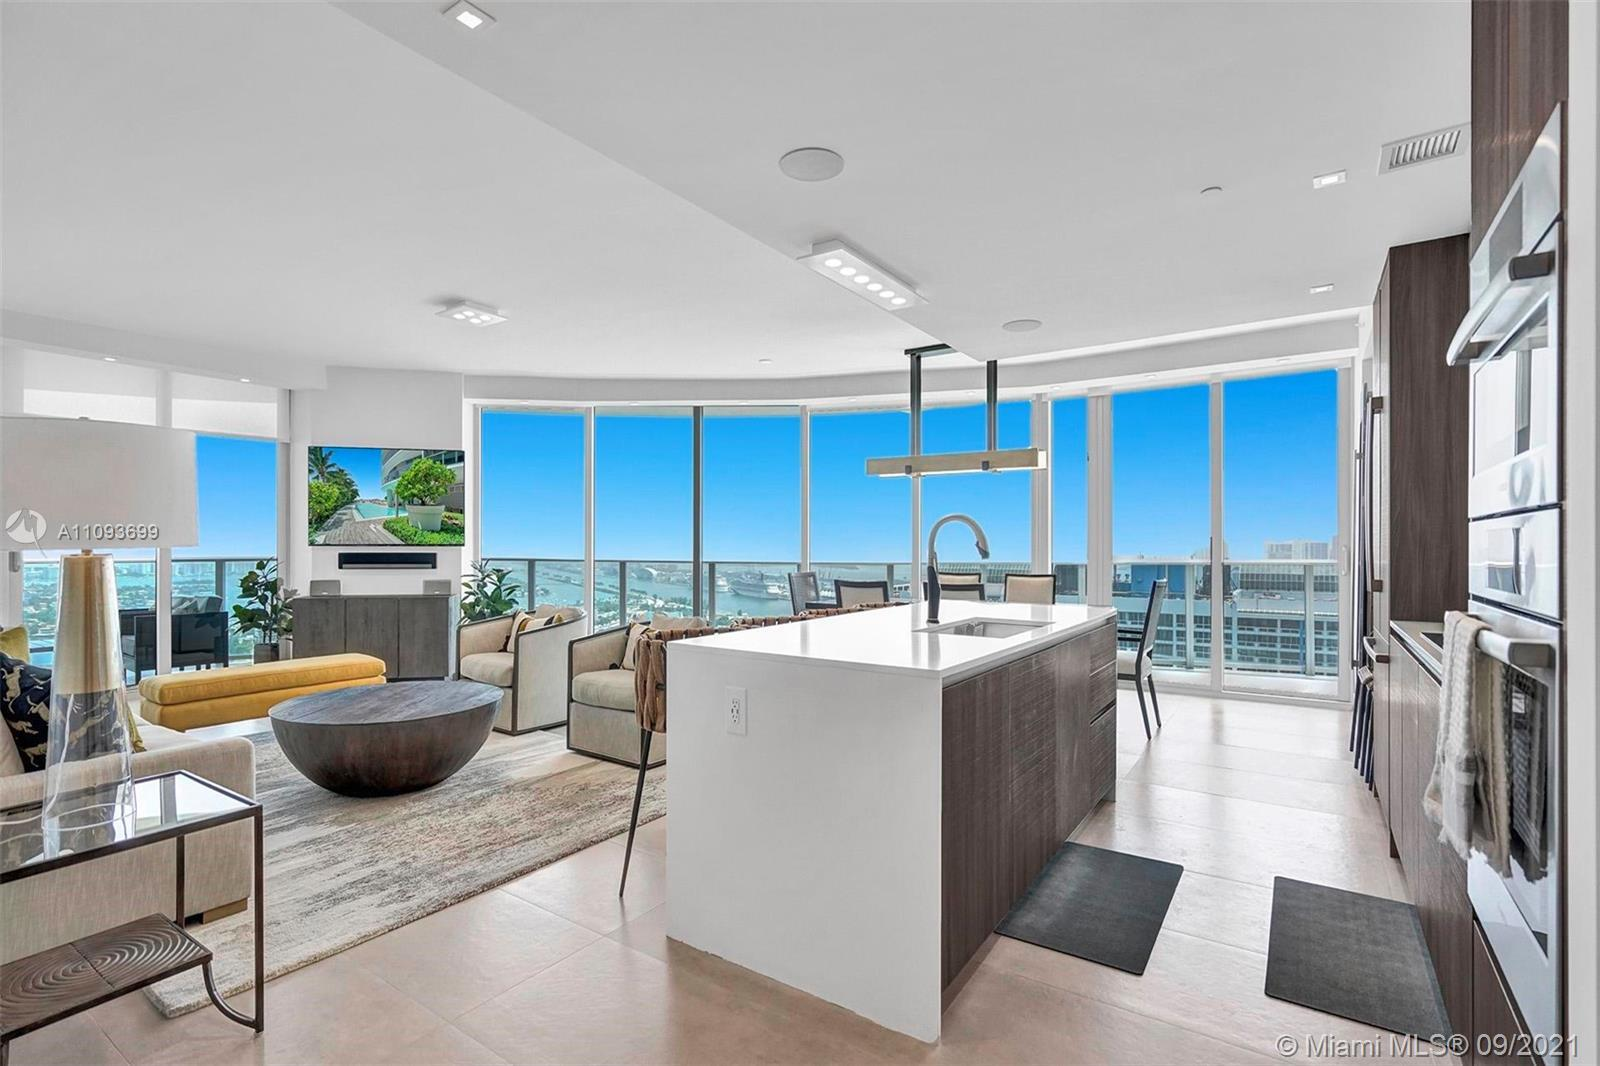 Aria on the bay brings you this STUNNING Fully Furnished/Turn Key beauty in the sky. Remarkably deco